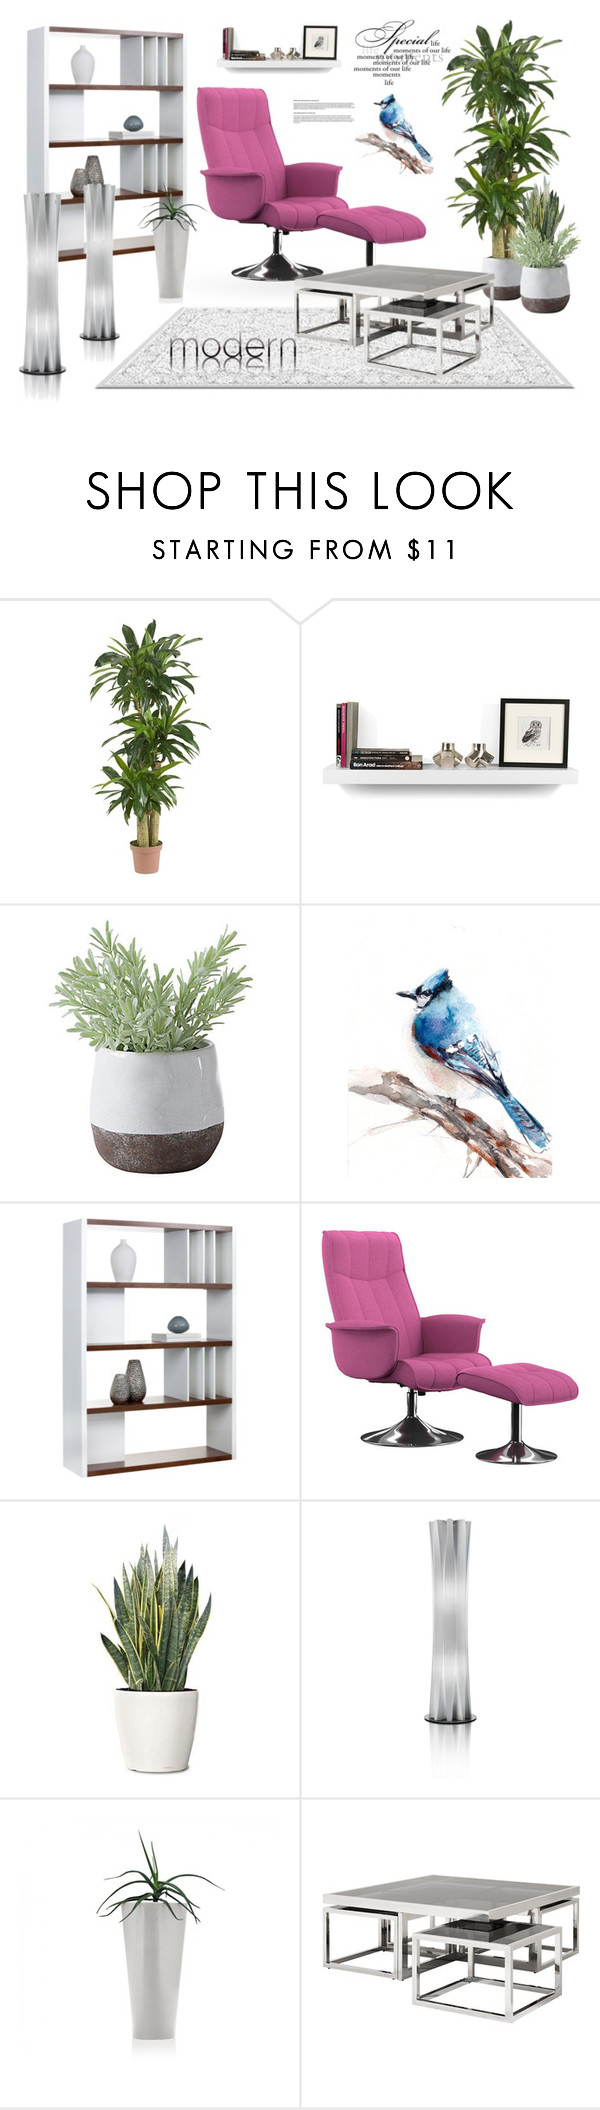 """nice"" by jana-masarovicova ❤ liked on Polyvore featuring interior, interiors, interior design, home, home decor, interior decorating, Nearly Natural, TemaHome, Torre & Tagus and Sunpan"